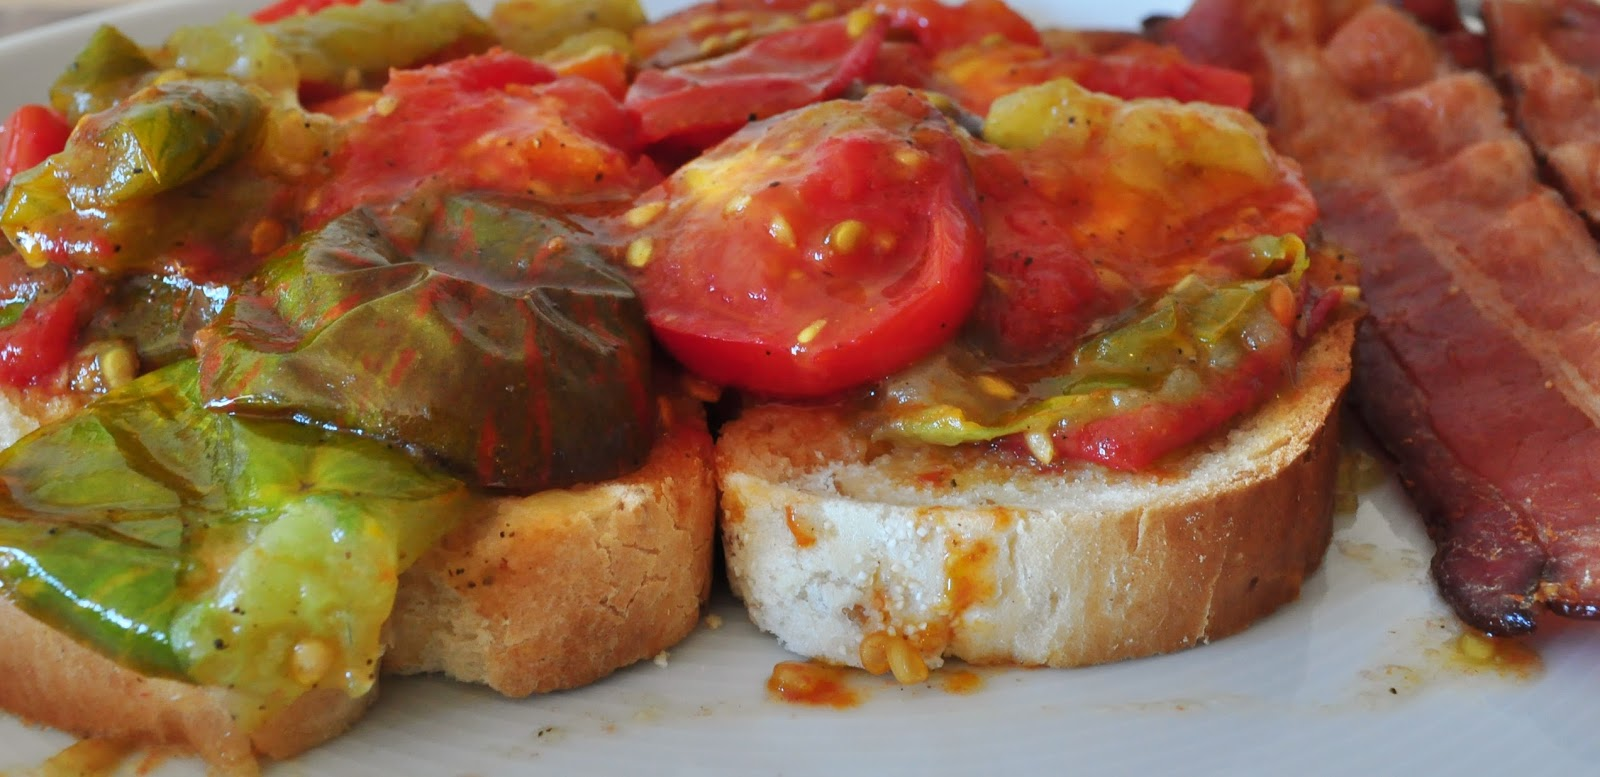 My Tiny Oven: Fried Red Tomatoes on Toast